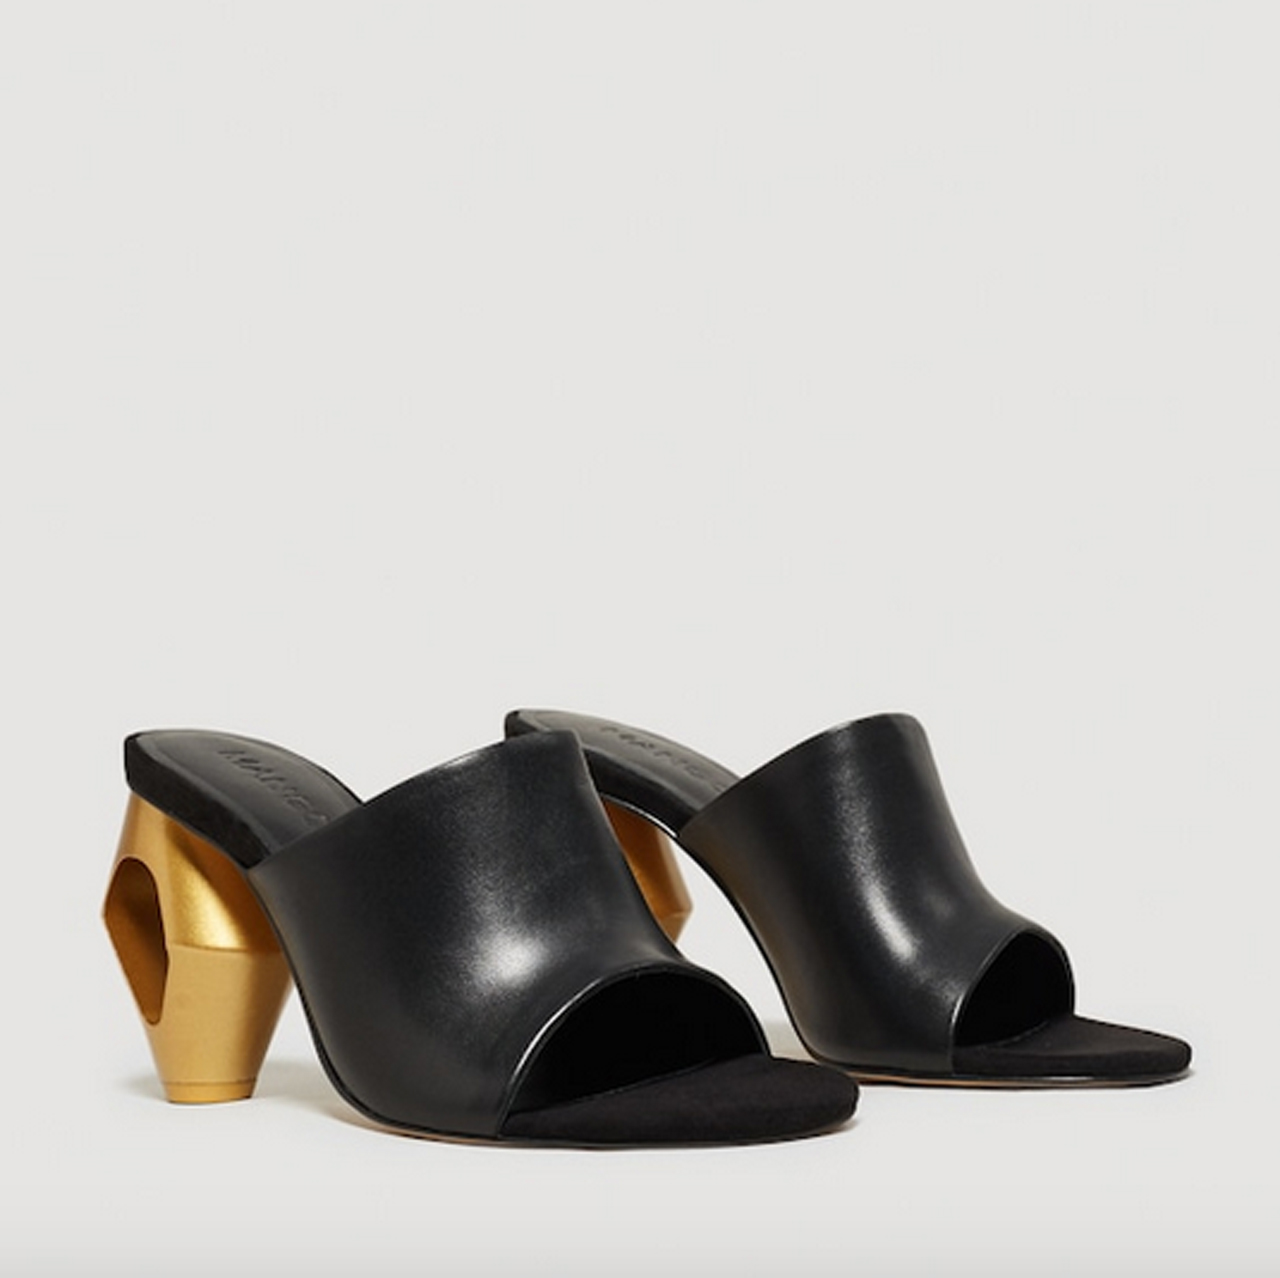 16f172f0cac Shoes for art s sake. Is this well-heeled fashion or modern art